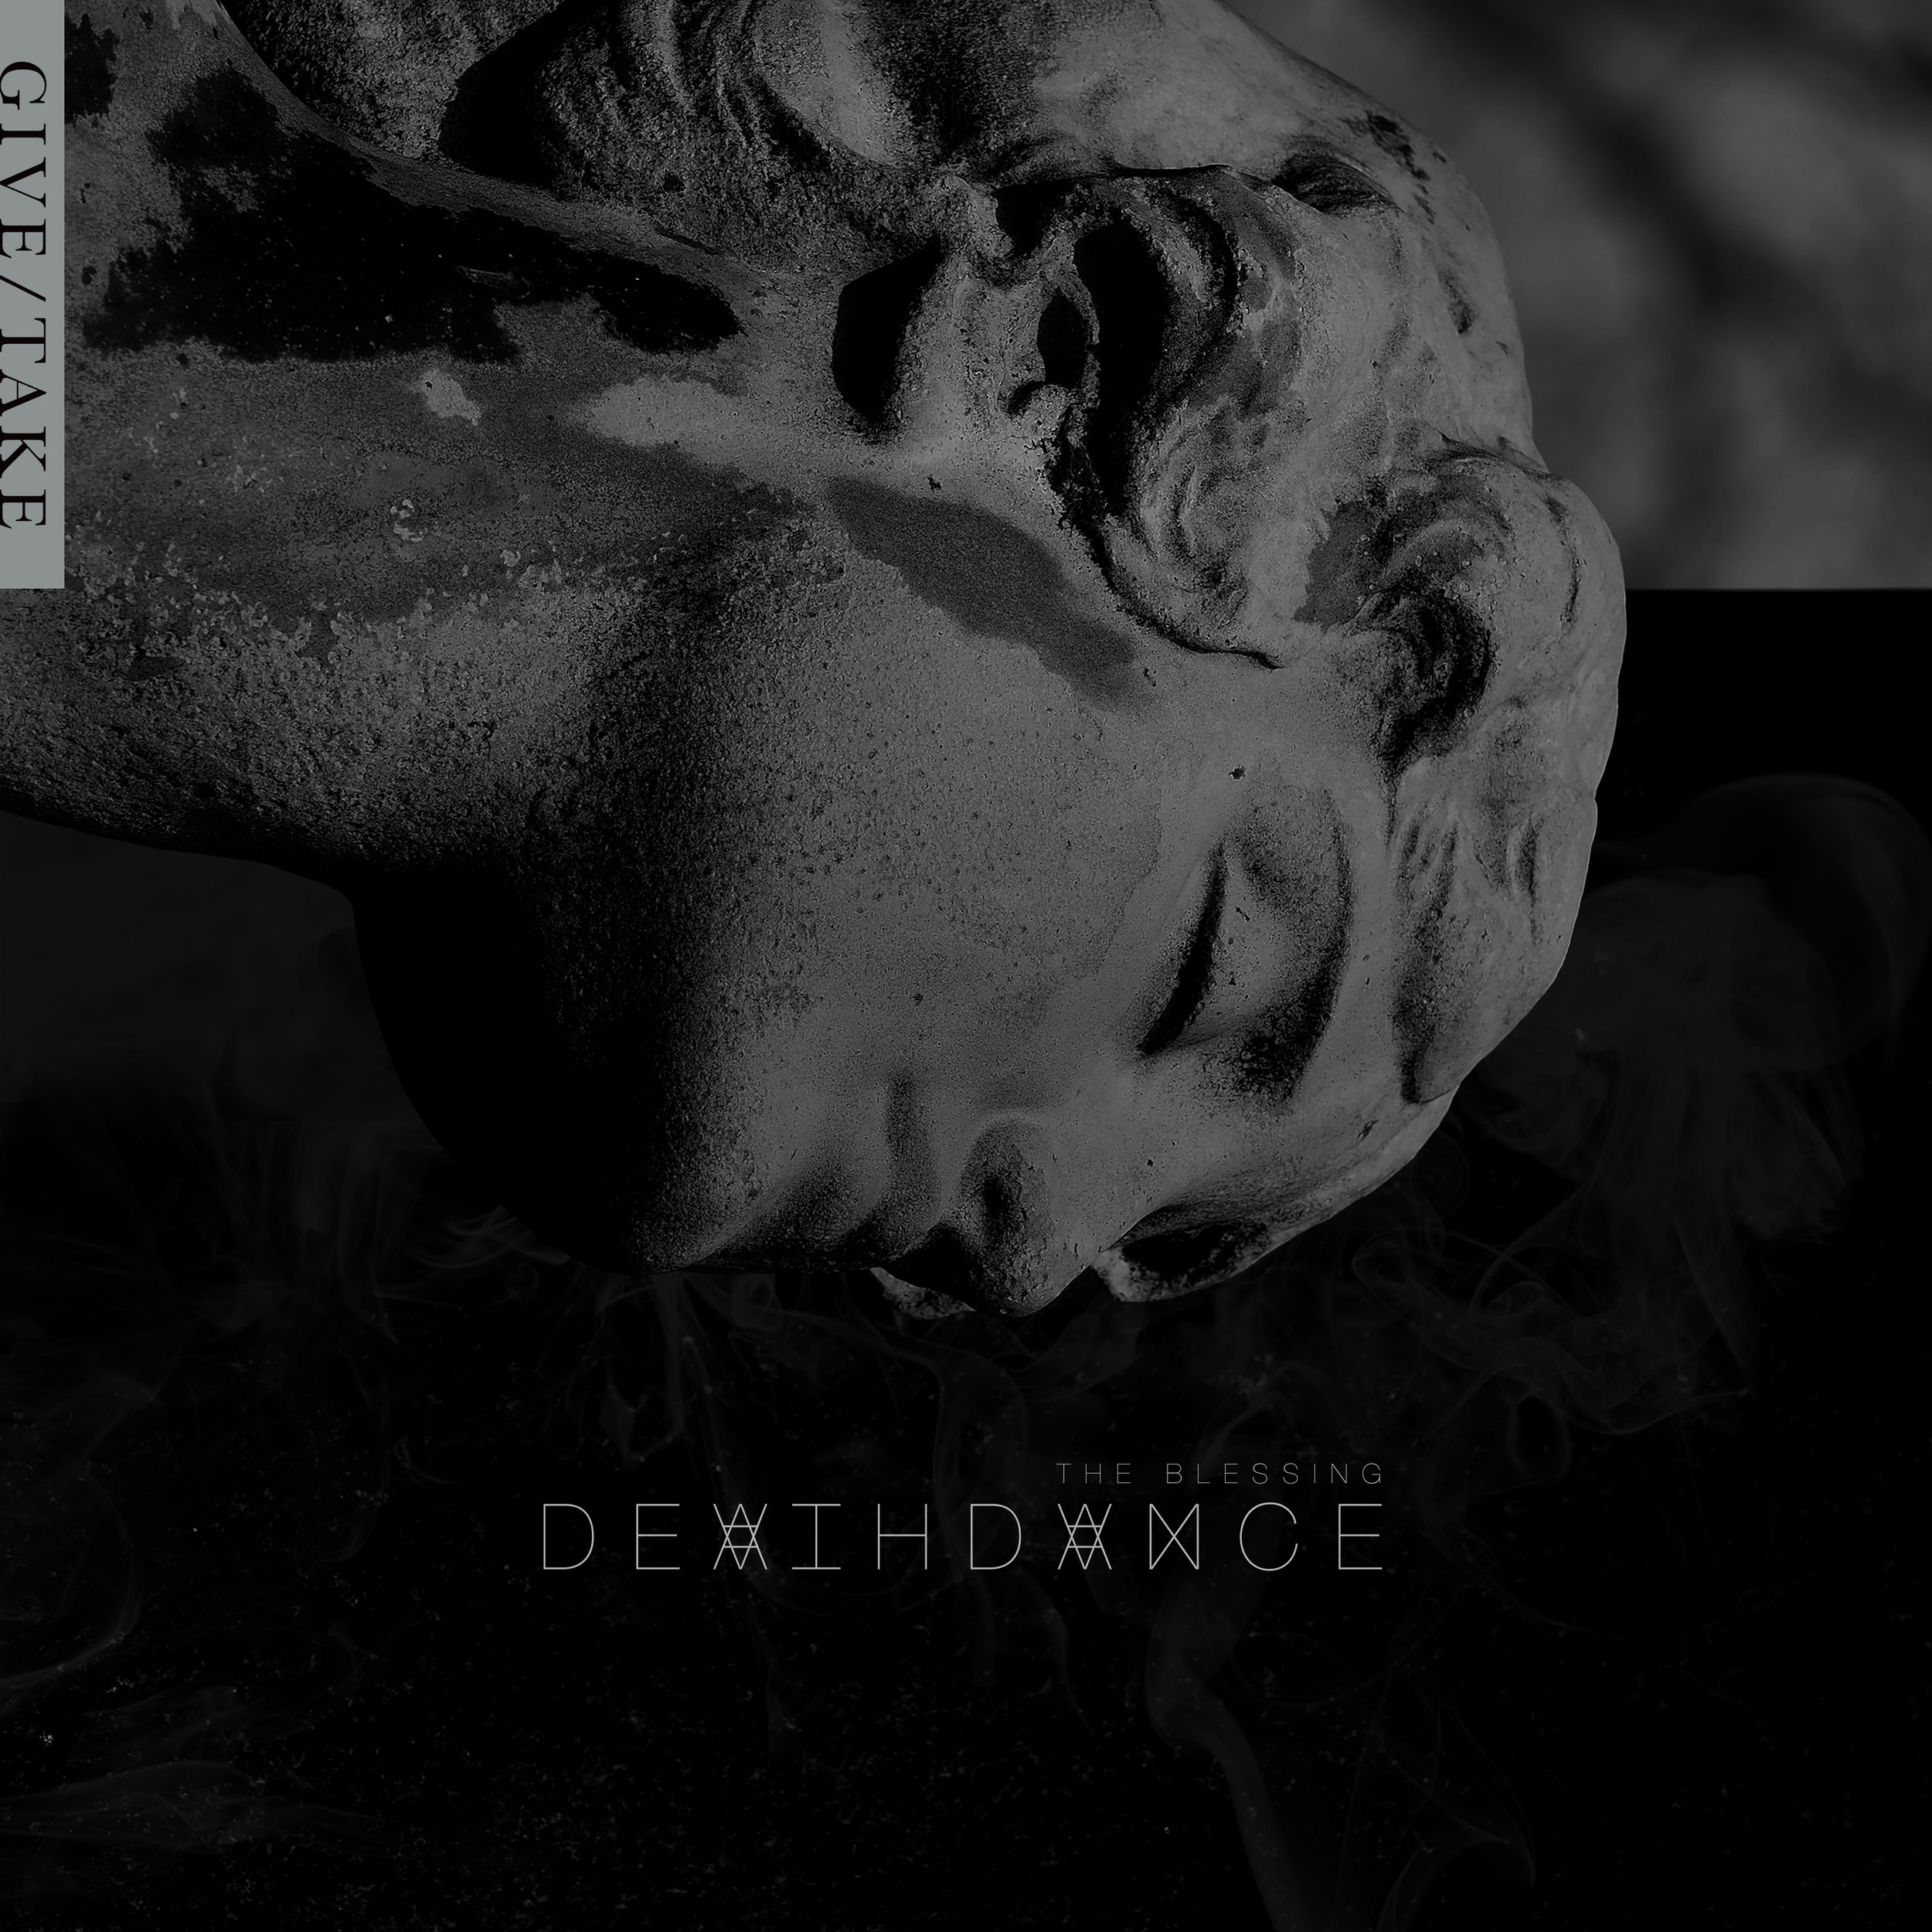 deathdance-the_blessing.jpg